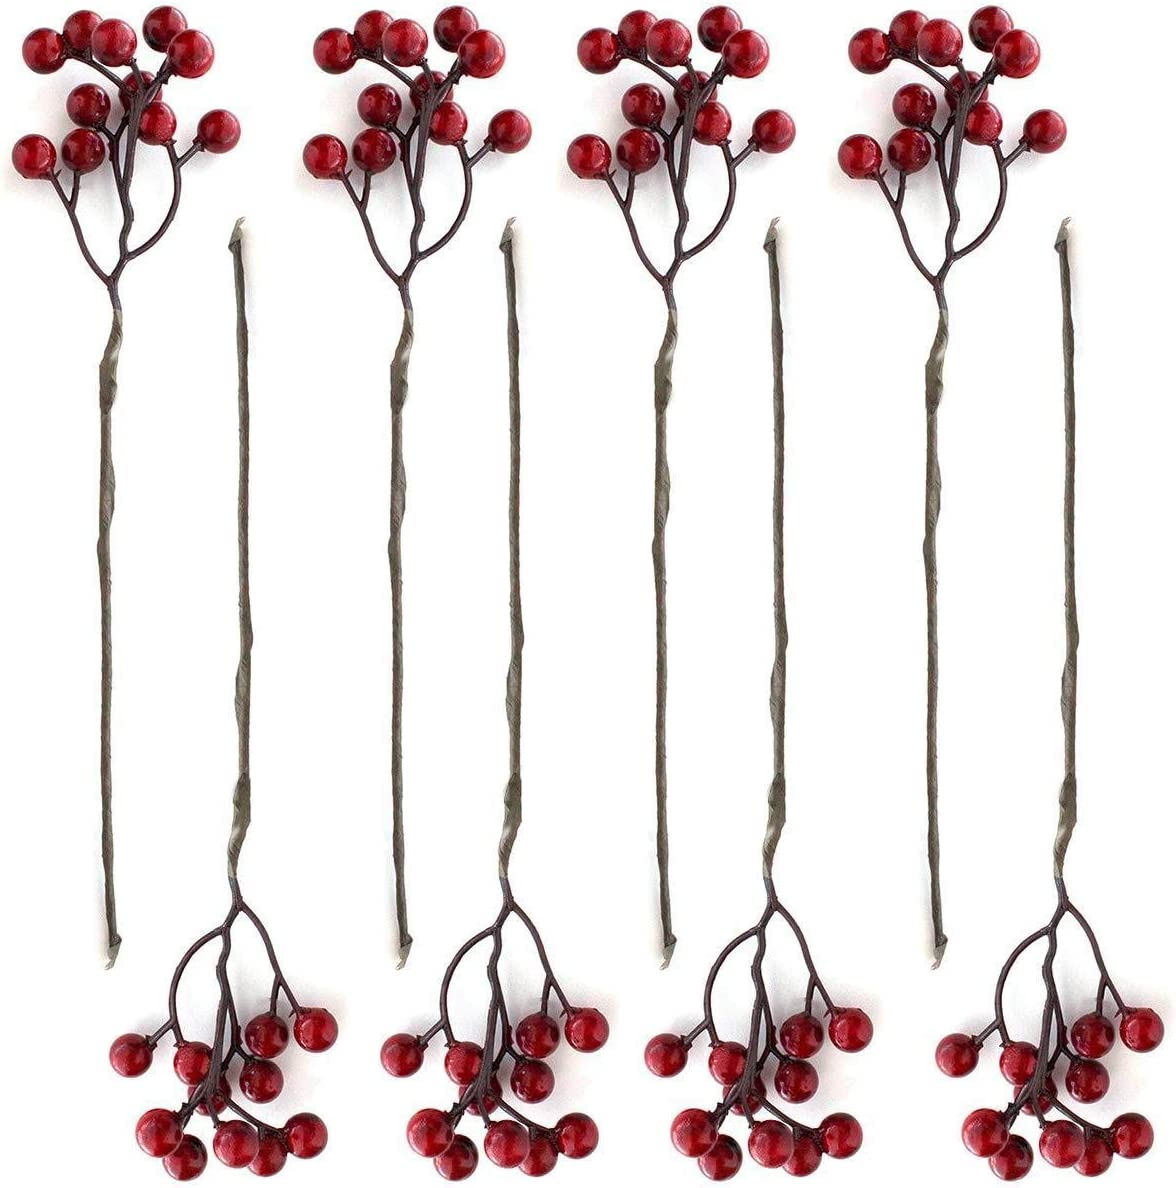 Garland Pip Berry Stems Artificial Berries Spray for DIY Crafts Wreath Decorative Red Winter Floral Picks for Craft Decorations//Home Holiday Decor Christmas Ornaments Decoration